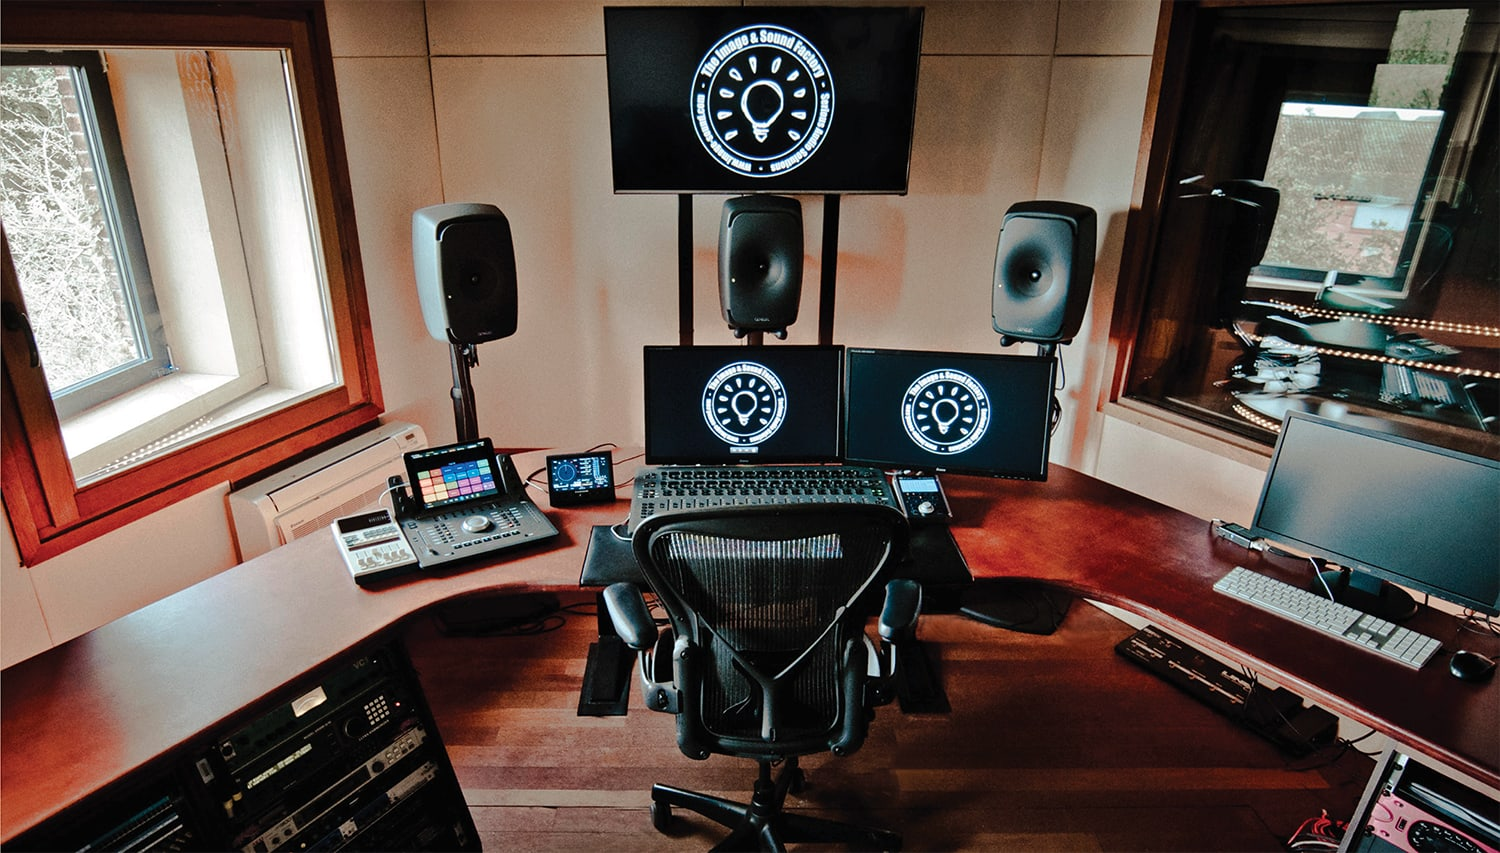 Genelec Case Study: The Image & Sound Factory 1